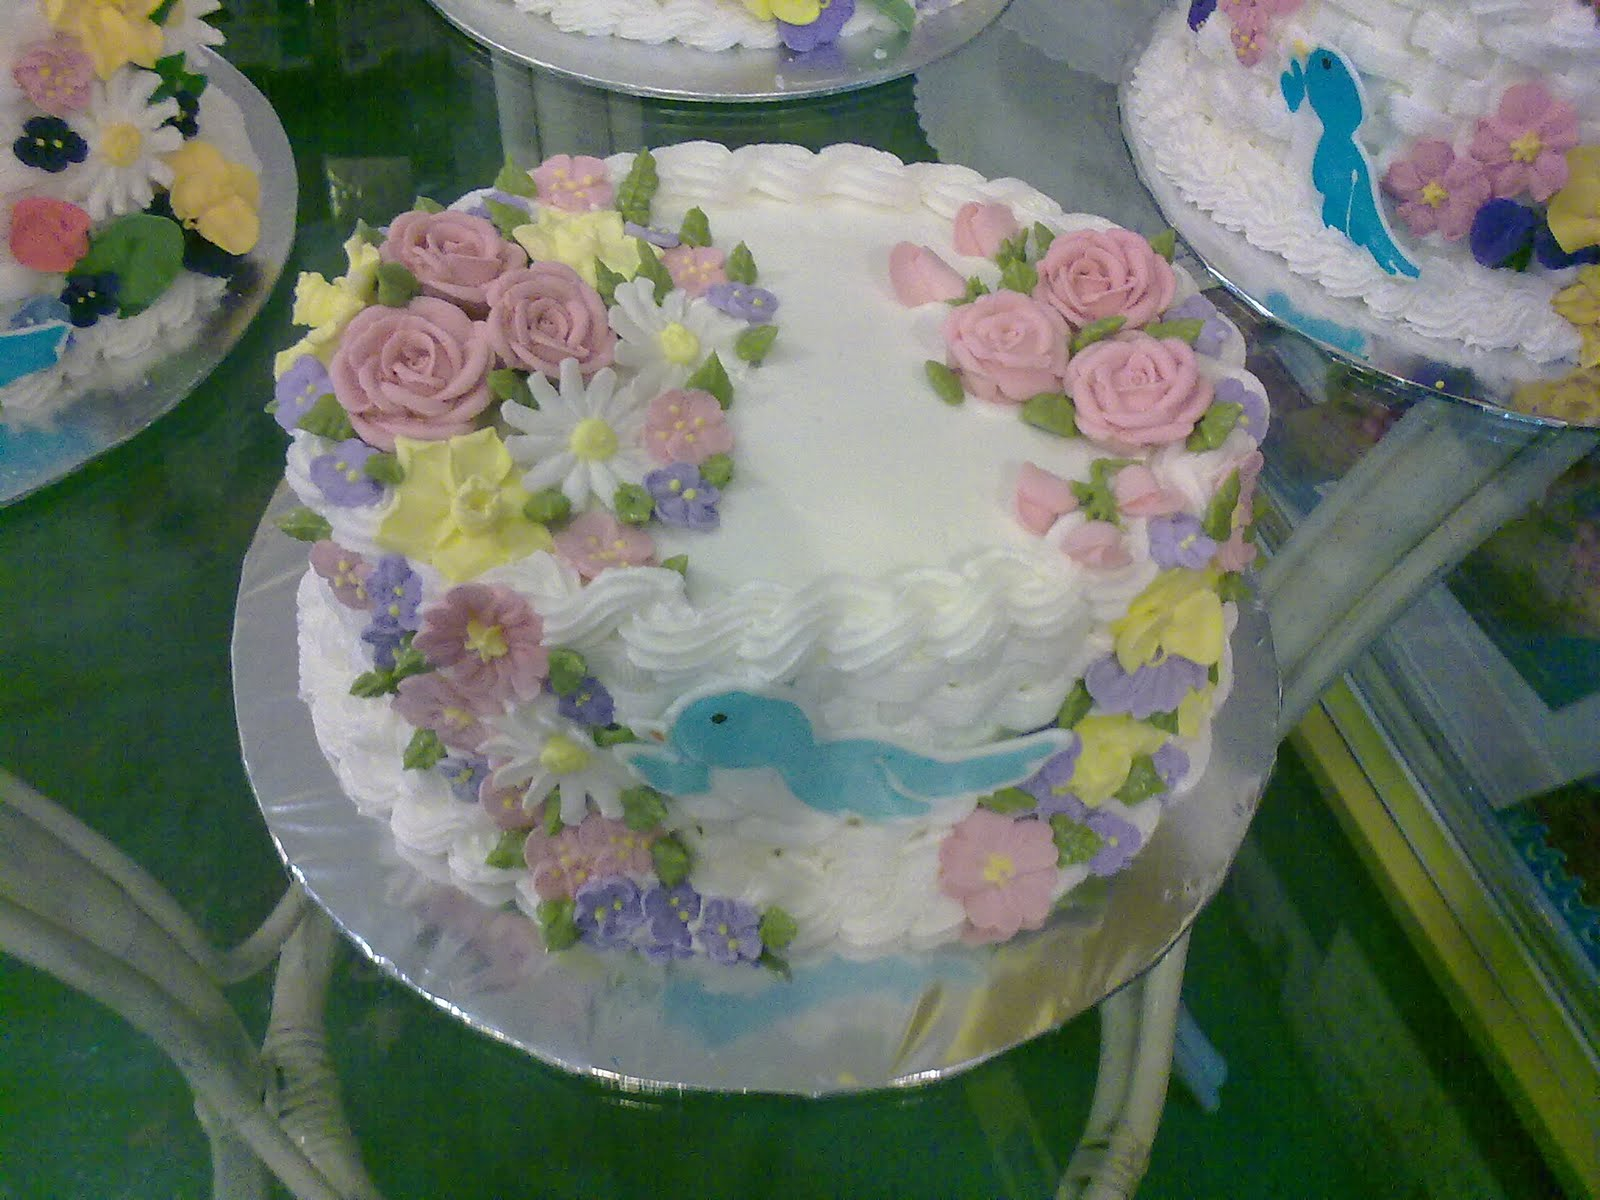 Wilton Cake Decorating Course 2 : Fun In Cake Decorating: Wilton Cake Decorating Course 2